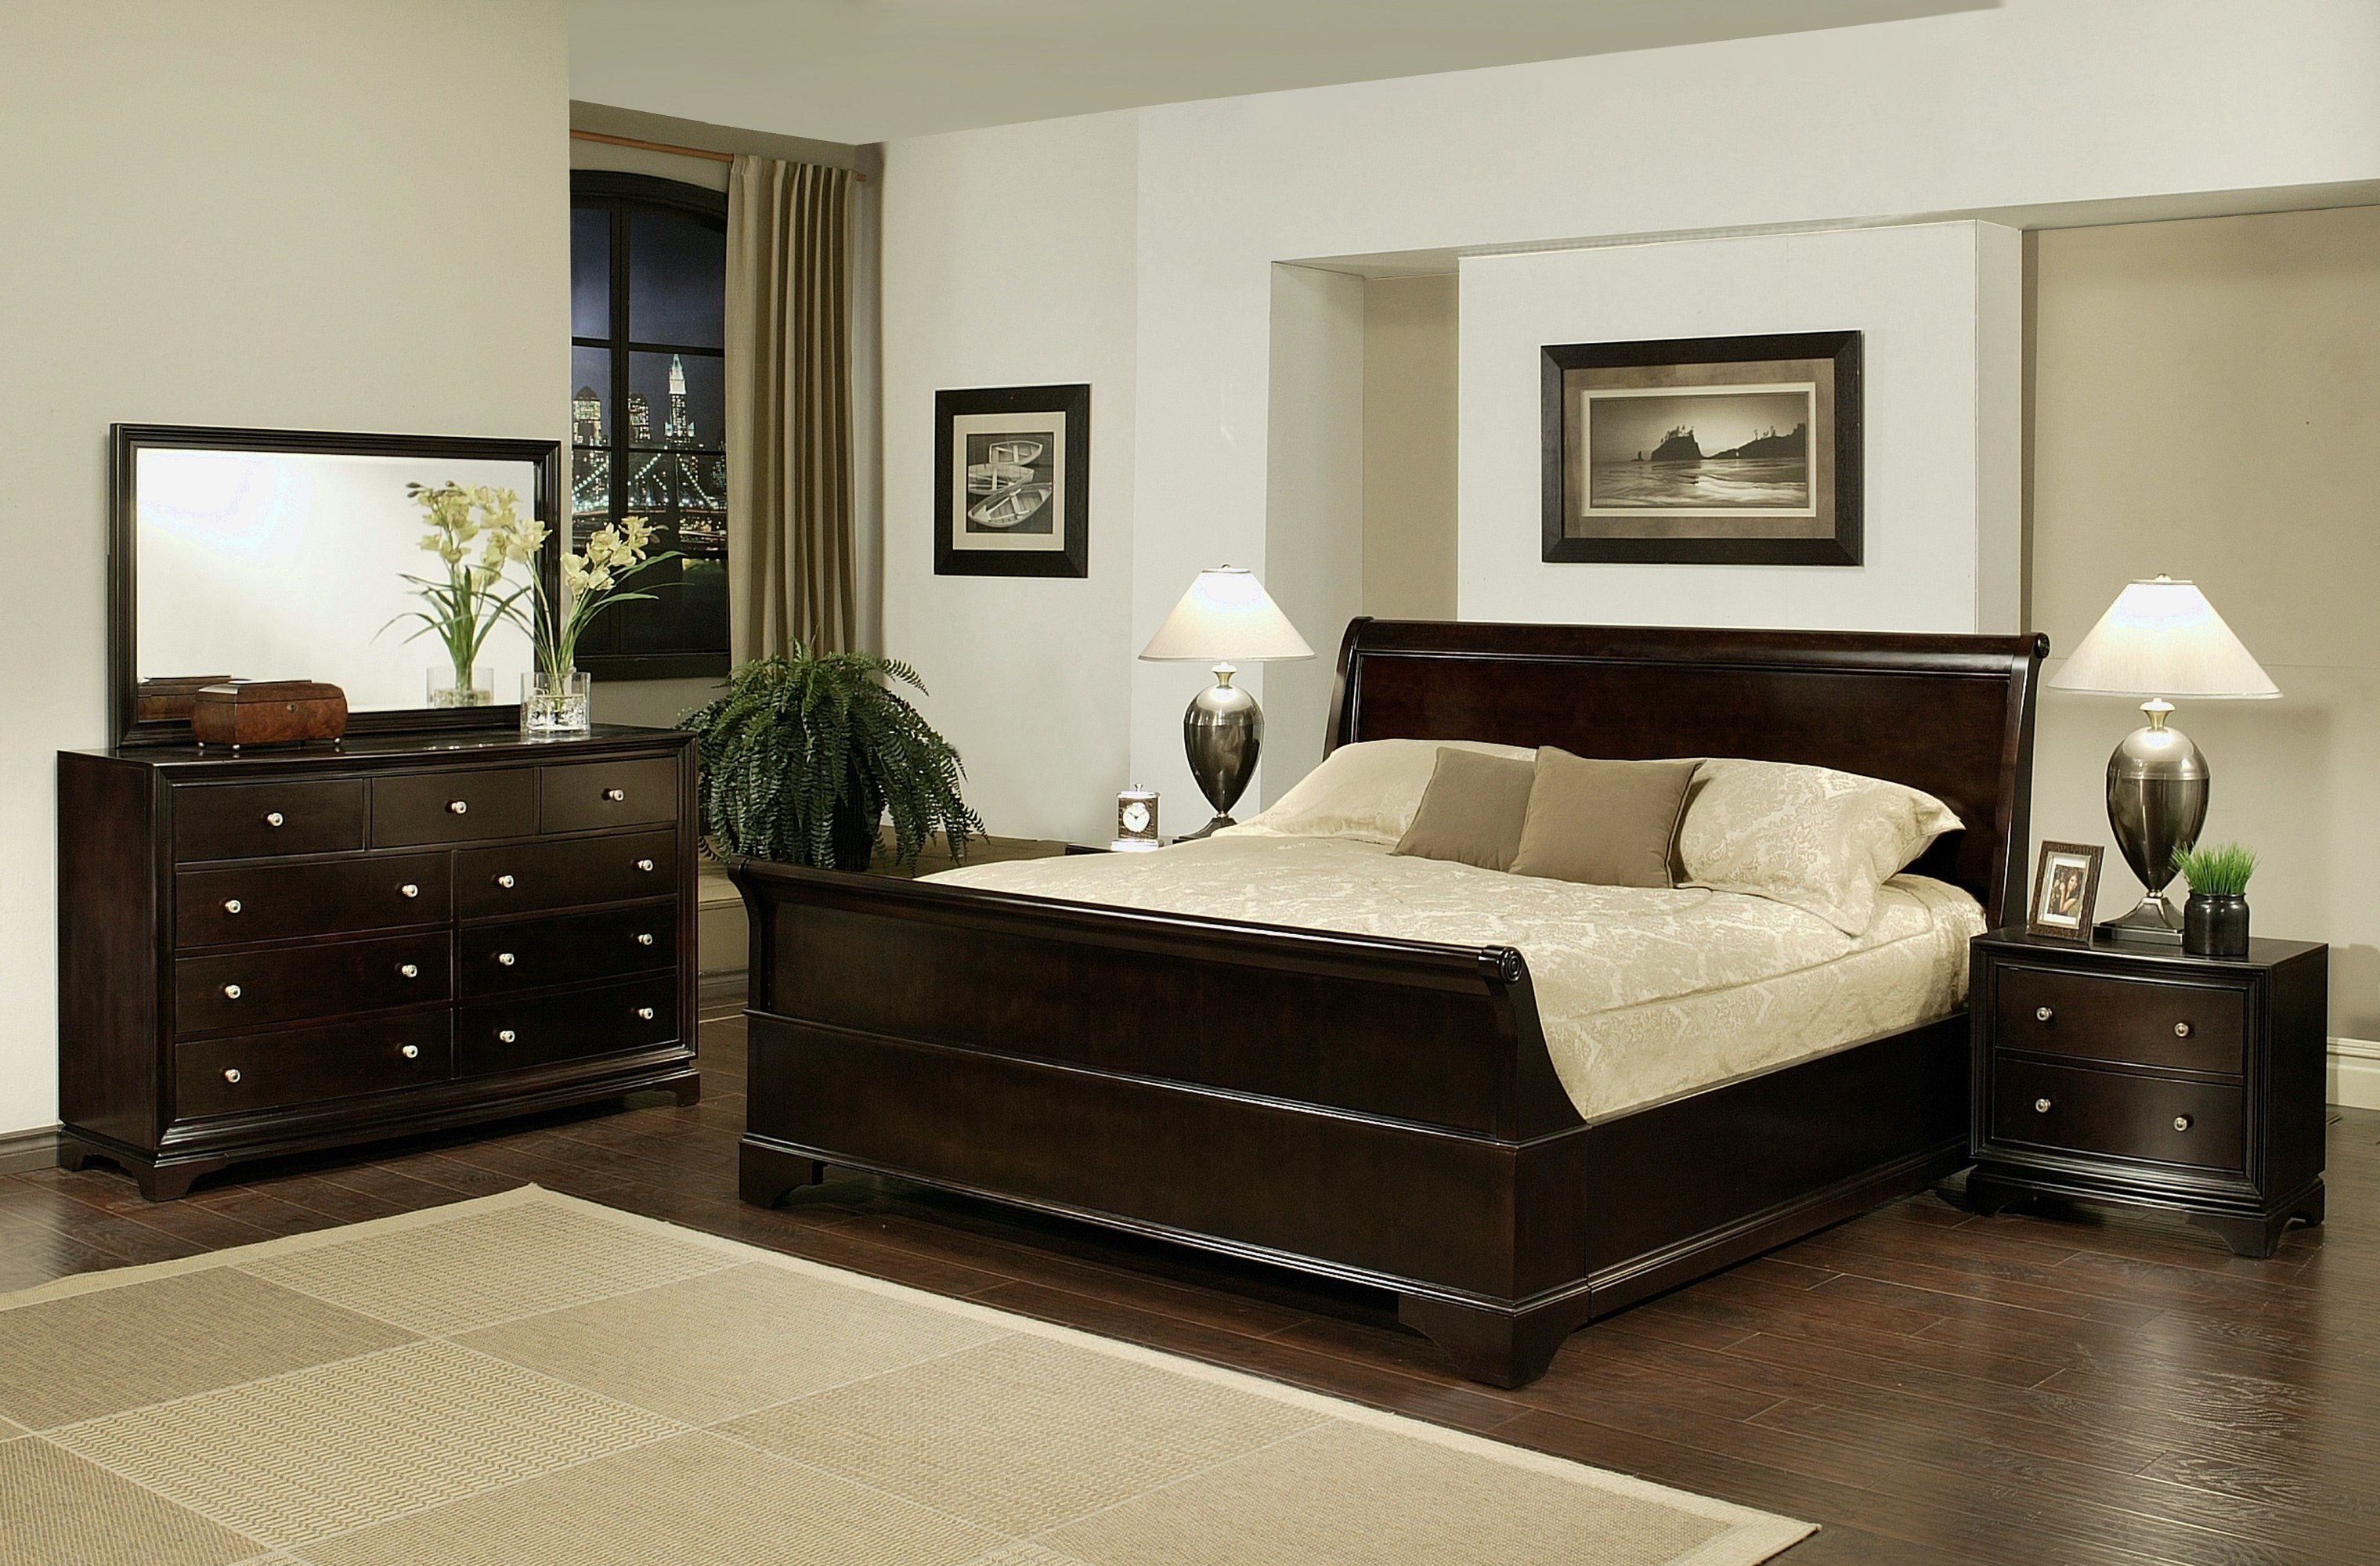 Best Cheap Bedroom Furniture In Memphis Tn 50 Home Delightful With Pictures